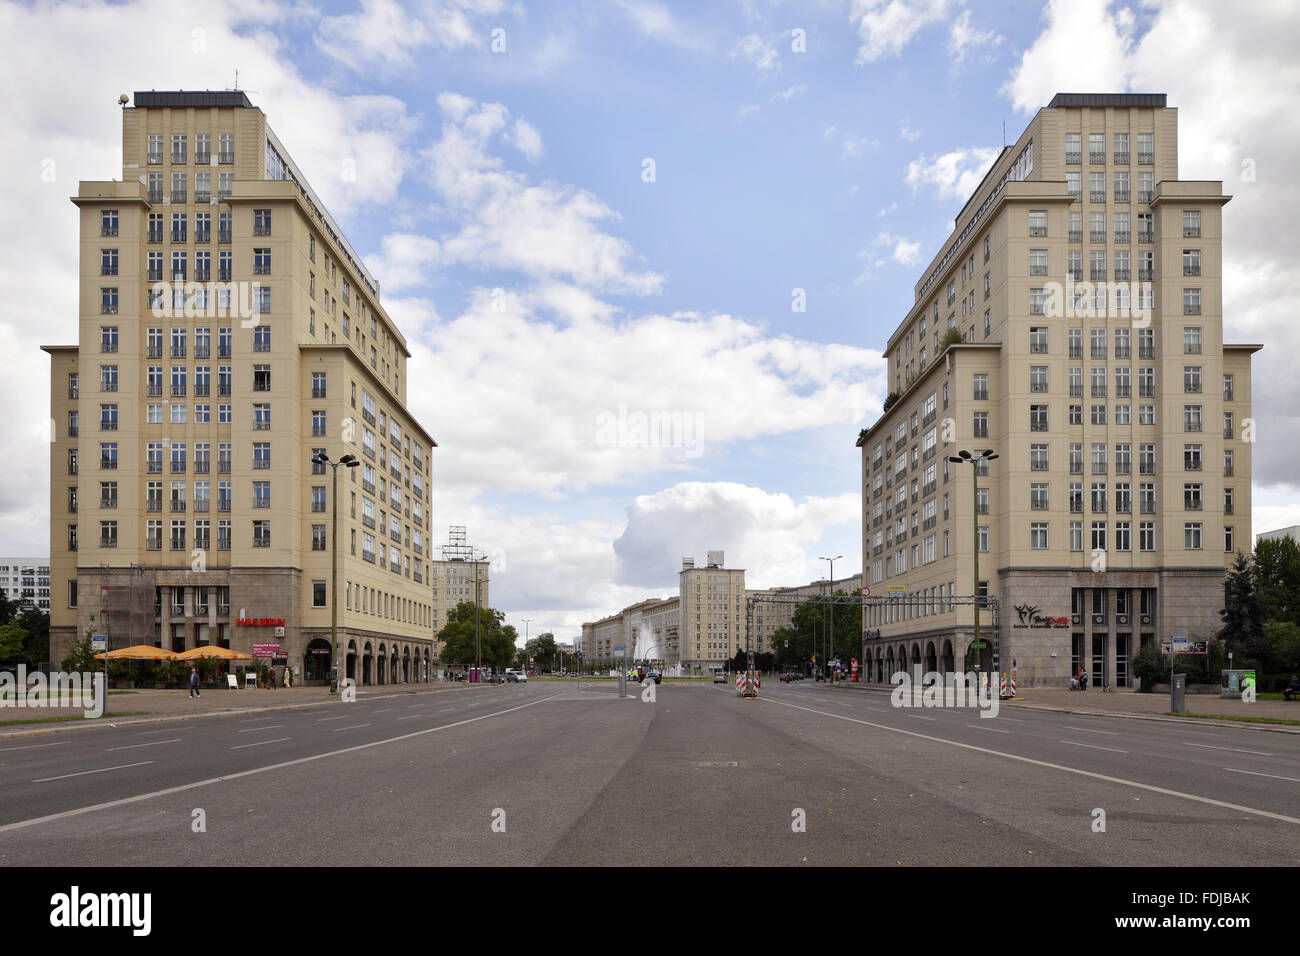 Berlin, Germany, gatehouses in the style of Stalinist architecture Stock Photo